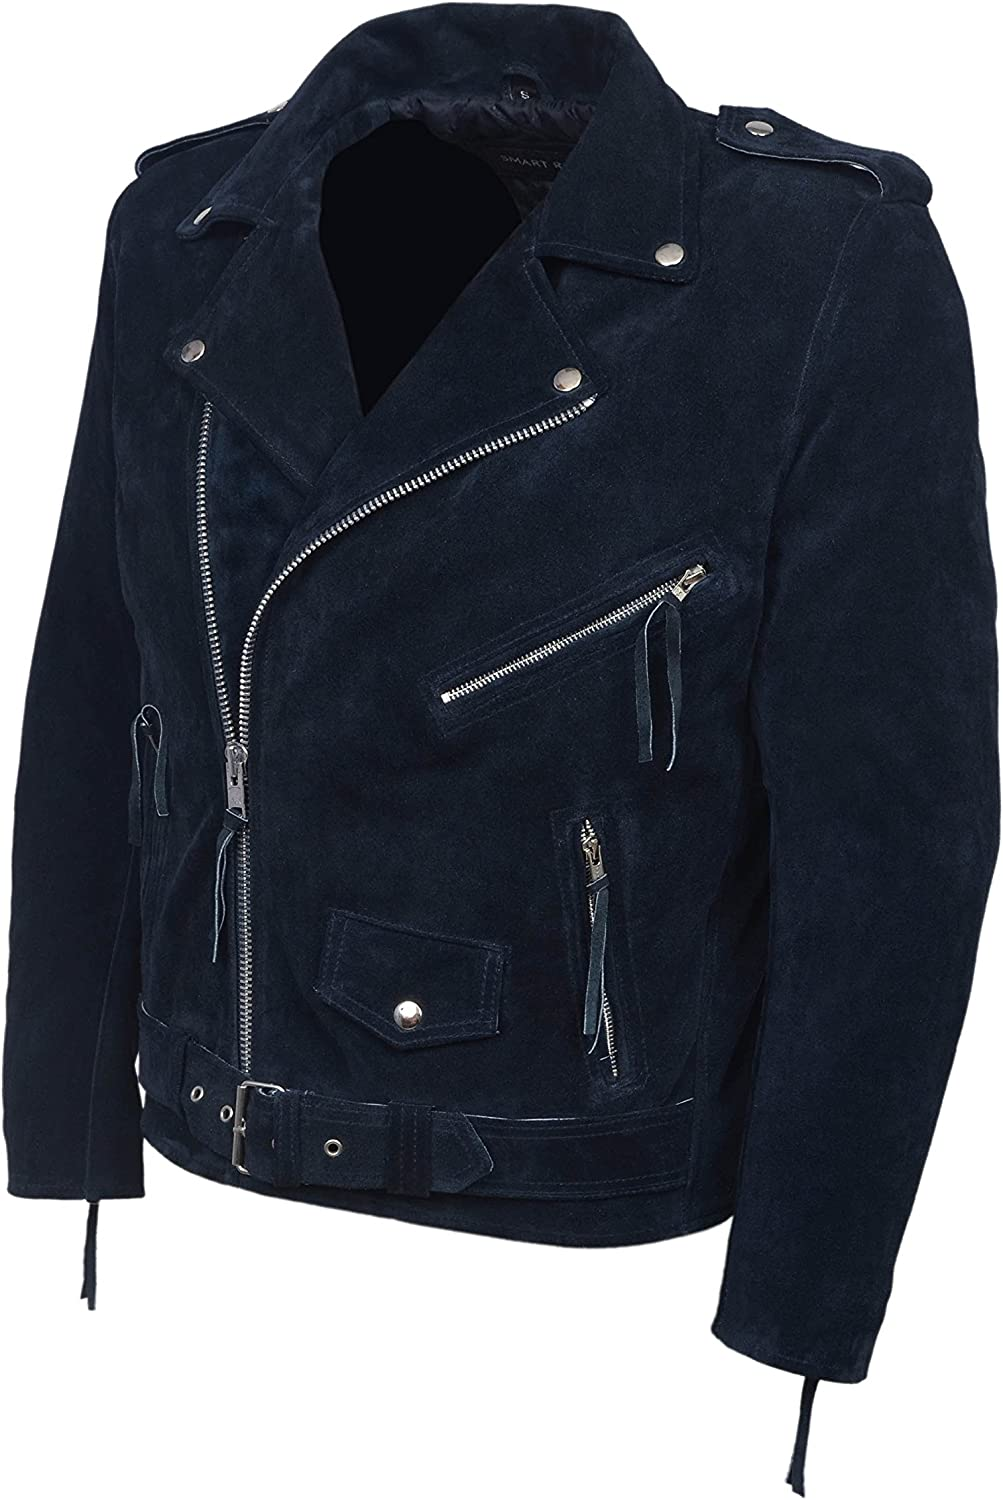 Brando Navy Blue Real Suede Men\'s Classic Motorcycle Biker Real Leather Jacket MBF 81ijLnoZ7rL